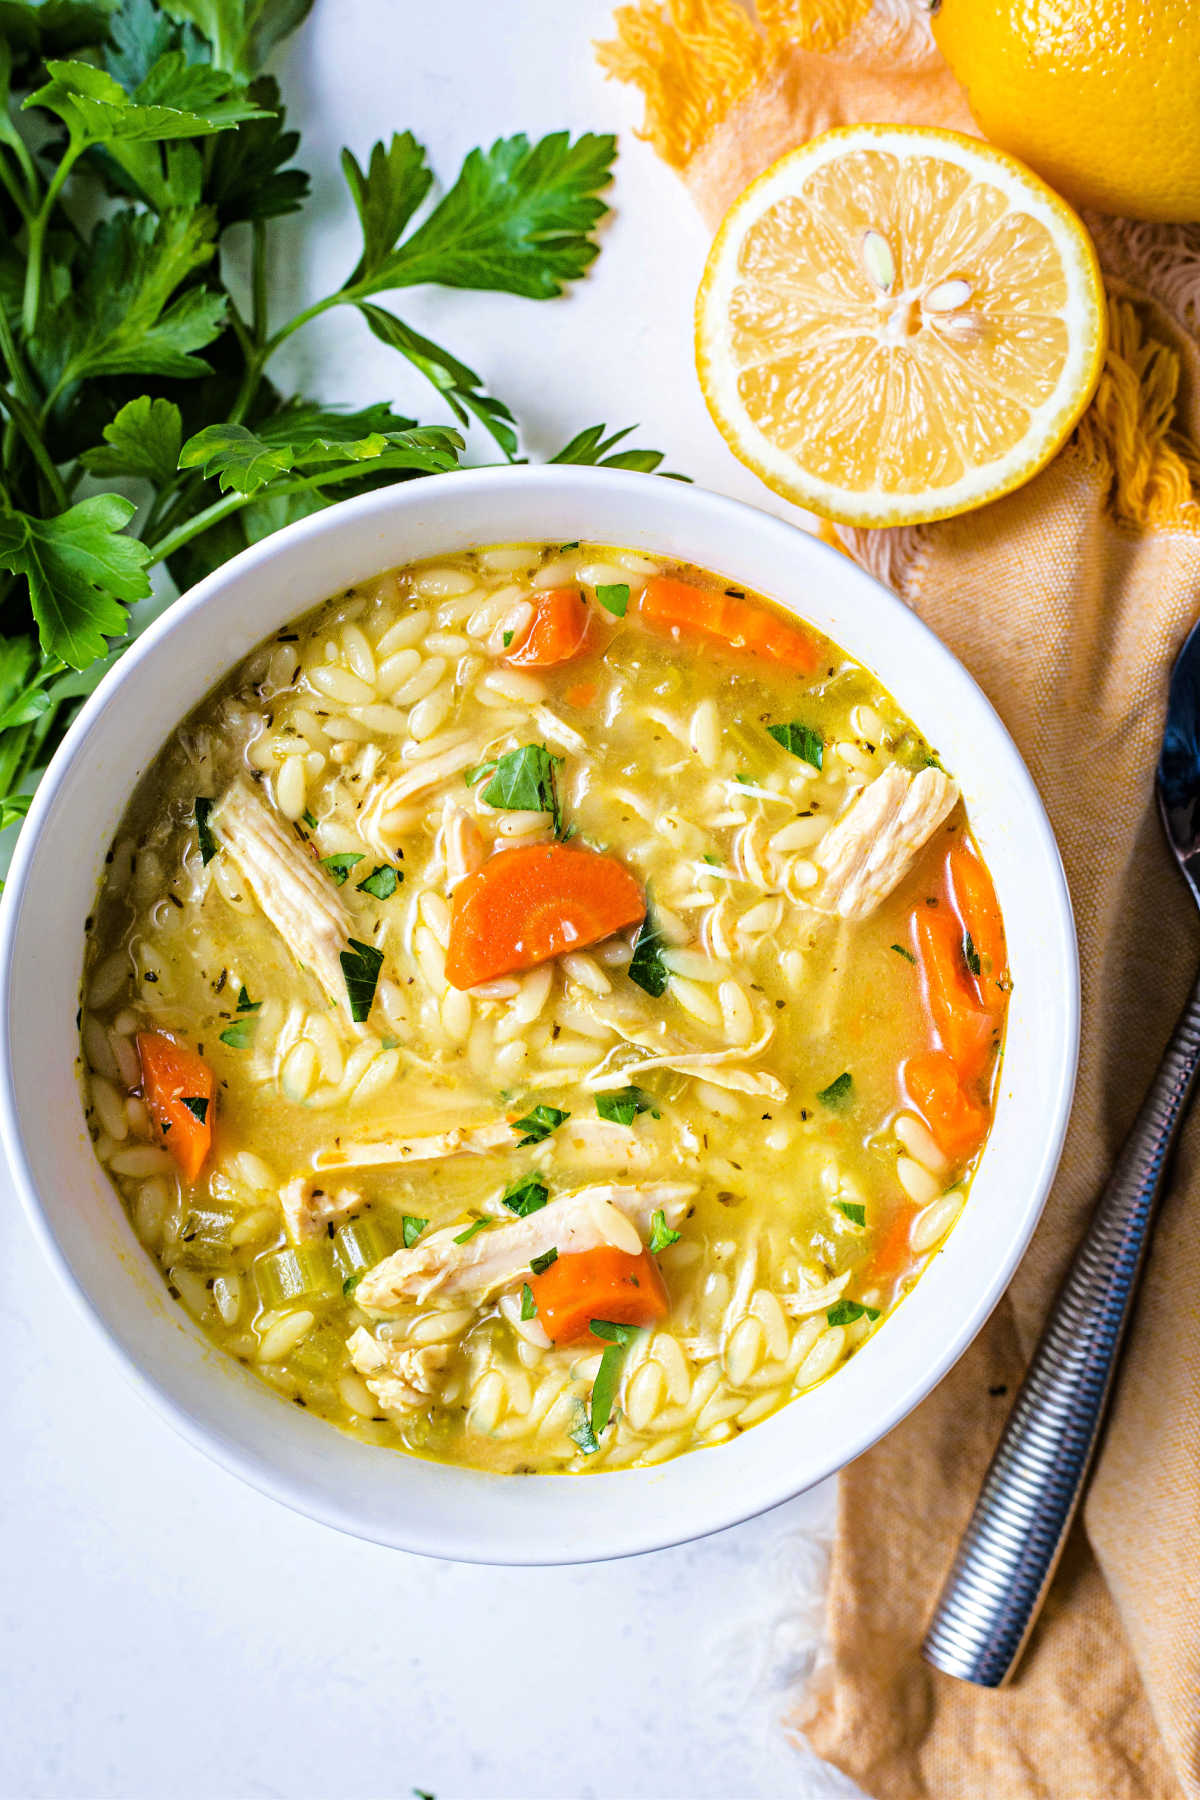 a bowl of lemon chicken orzo soup on a table with parsley and lemon.